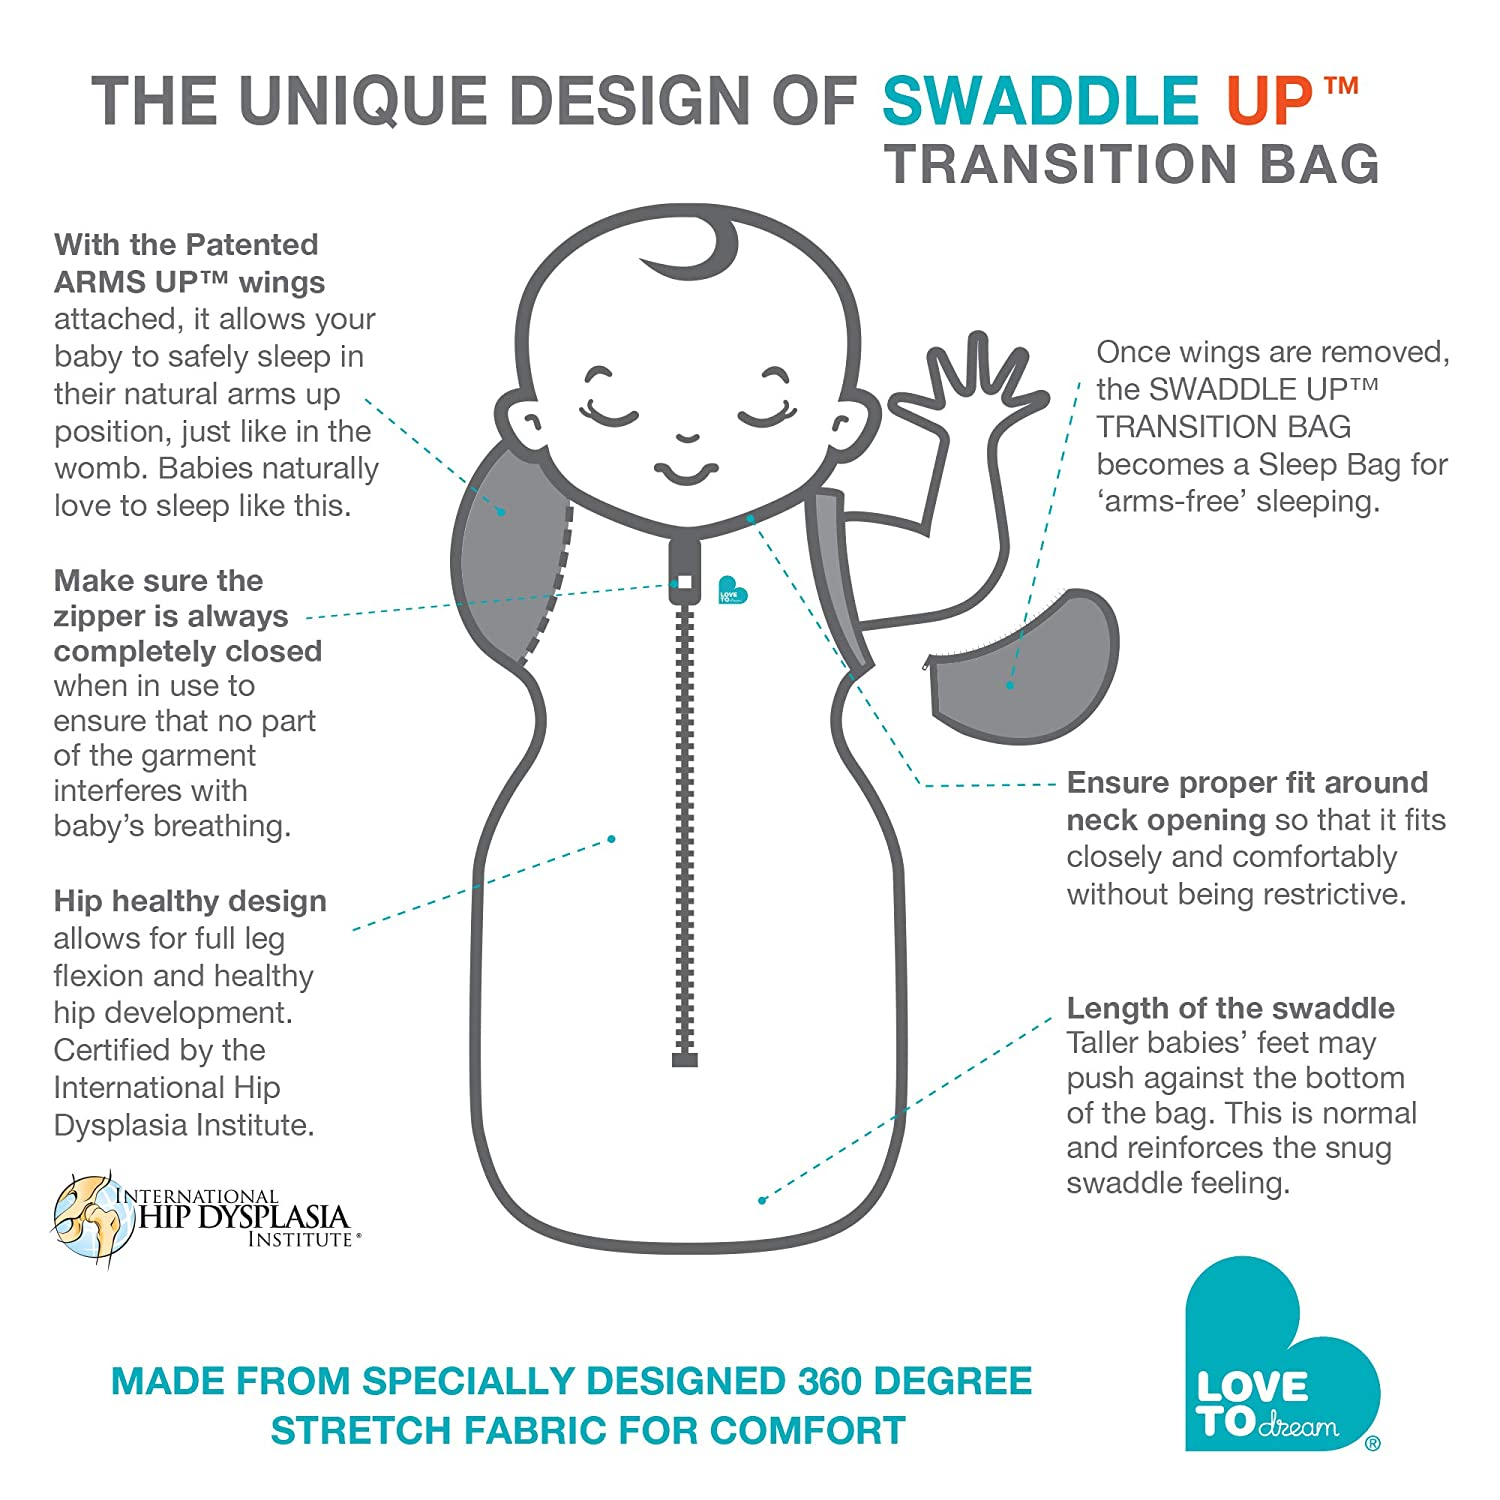 Information About Unique Deisgn of Swaddle Up Transition Bag